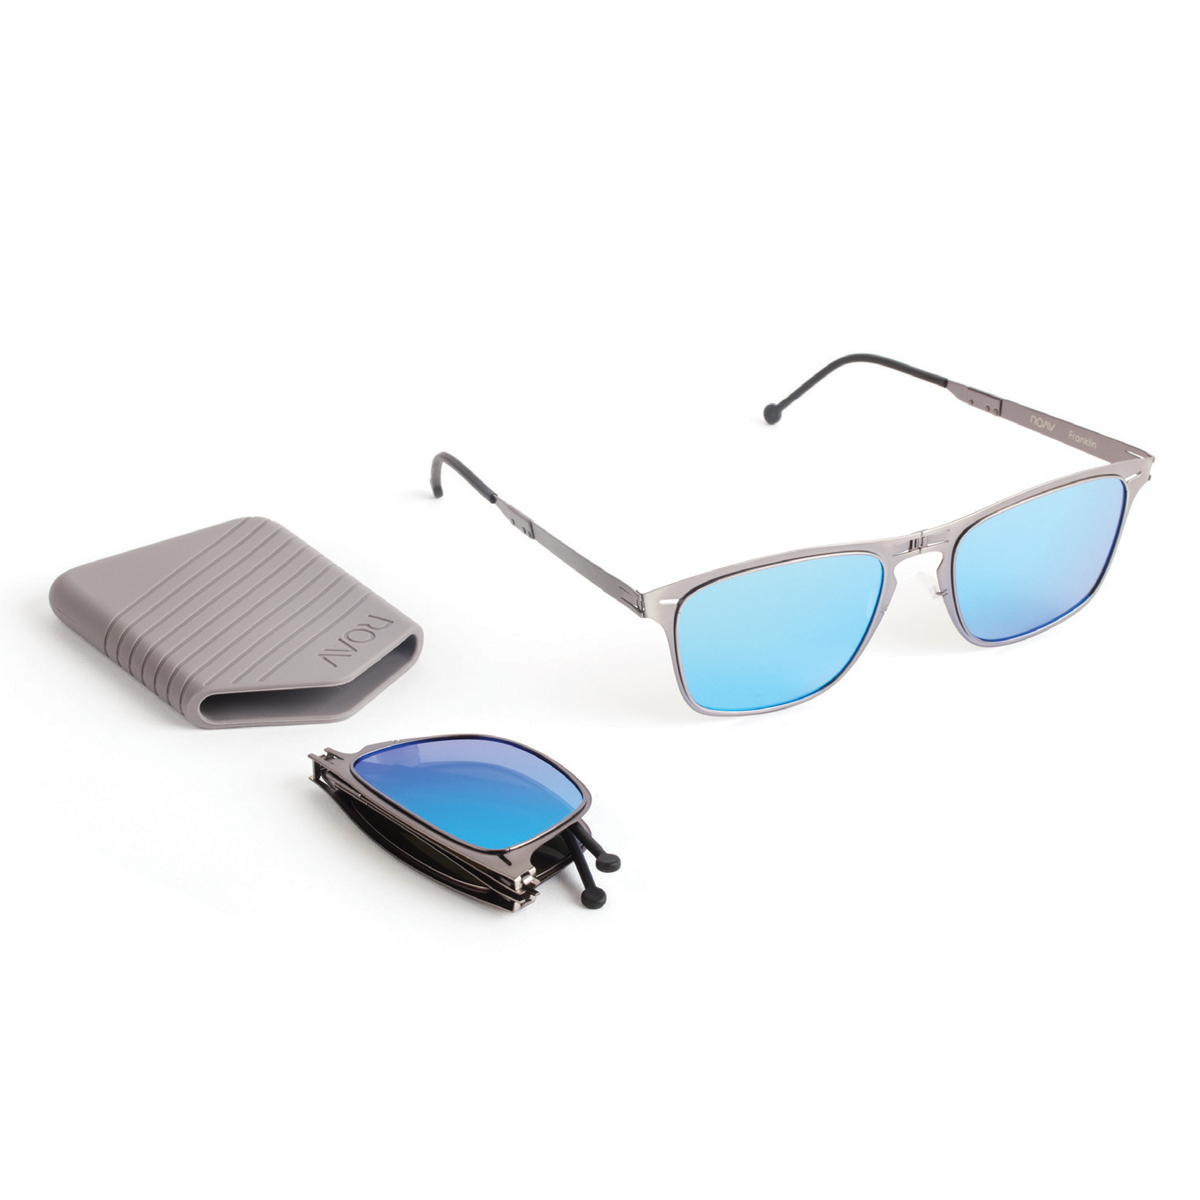 ROAV Origin Sunglasses